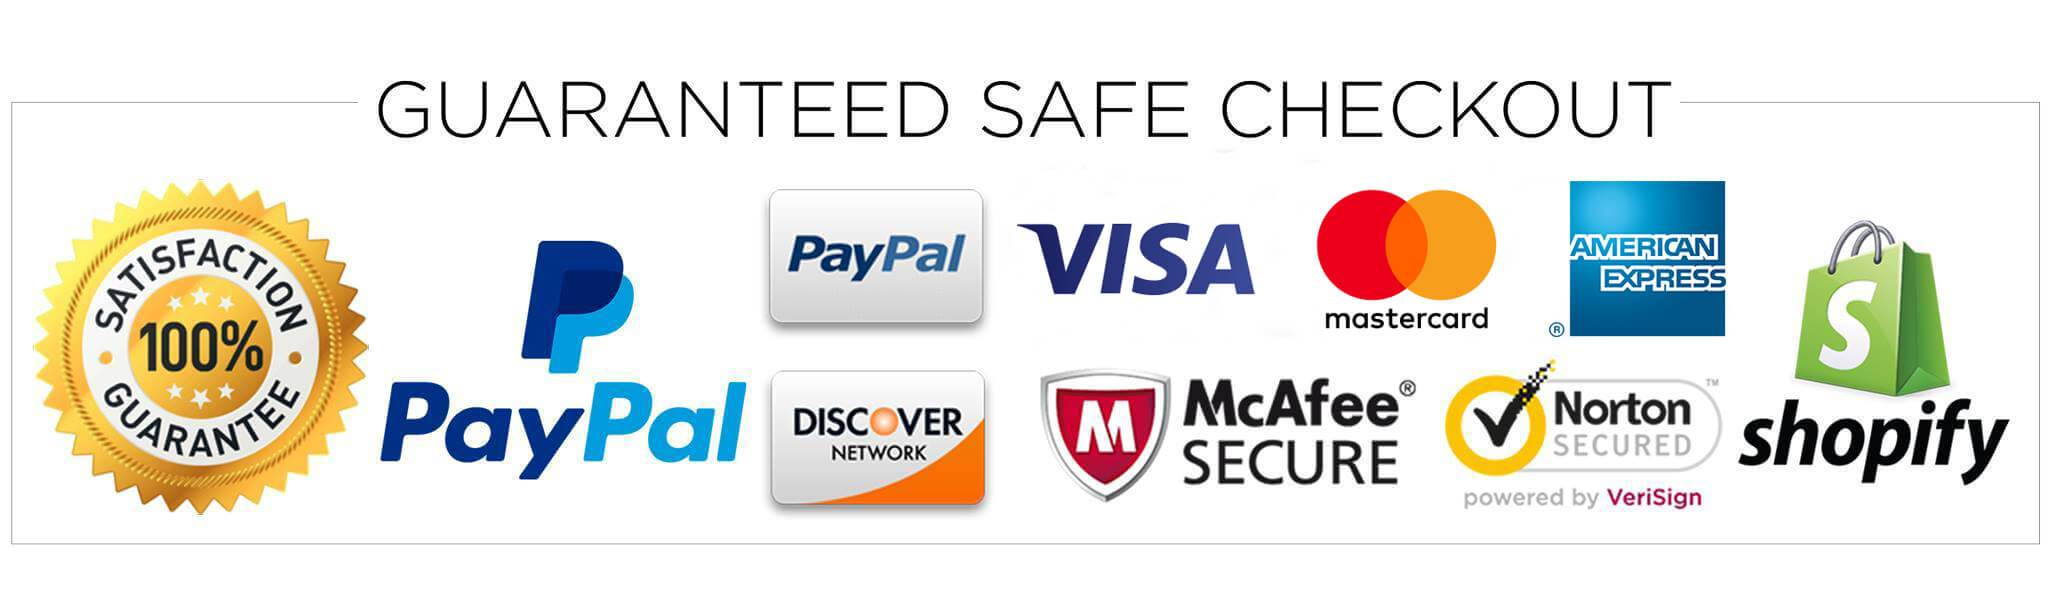 safe secured badge checkout payment